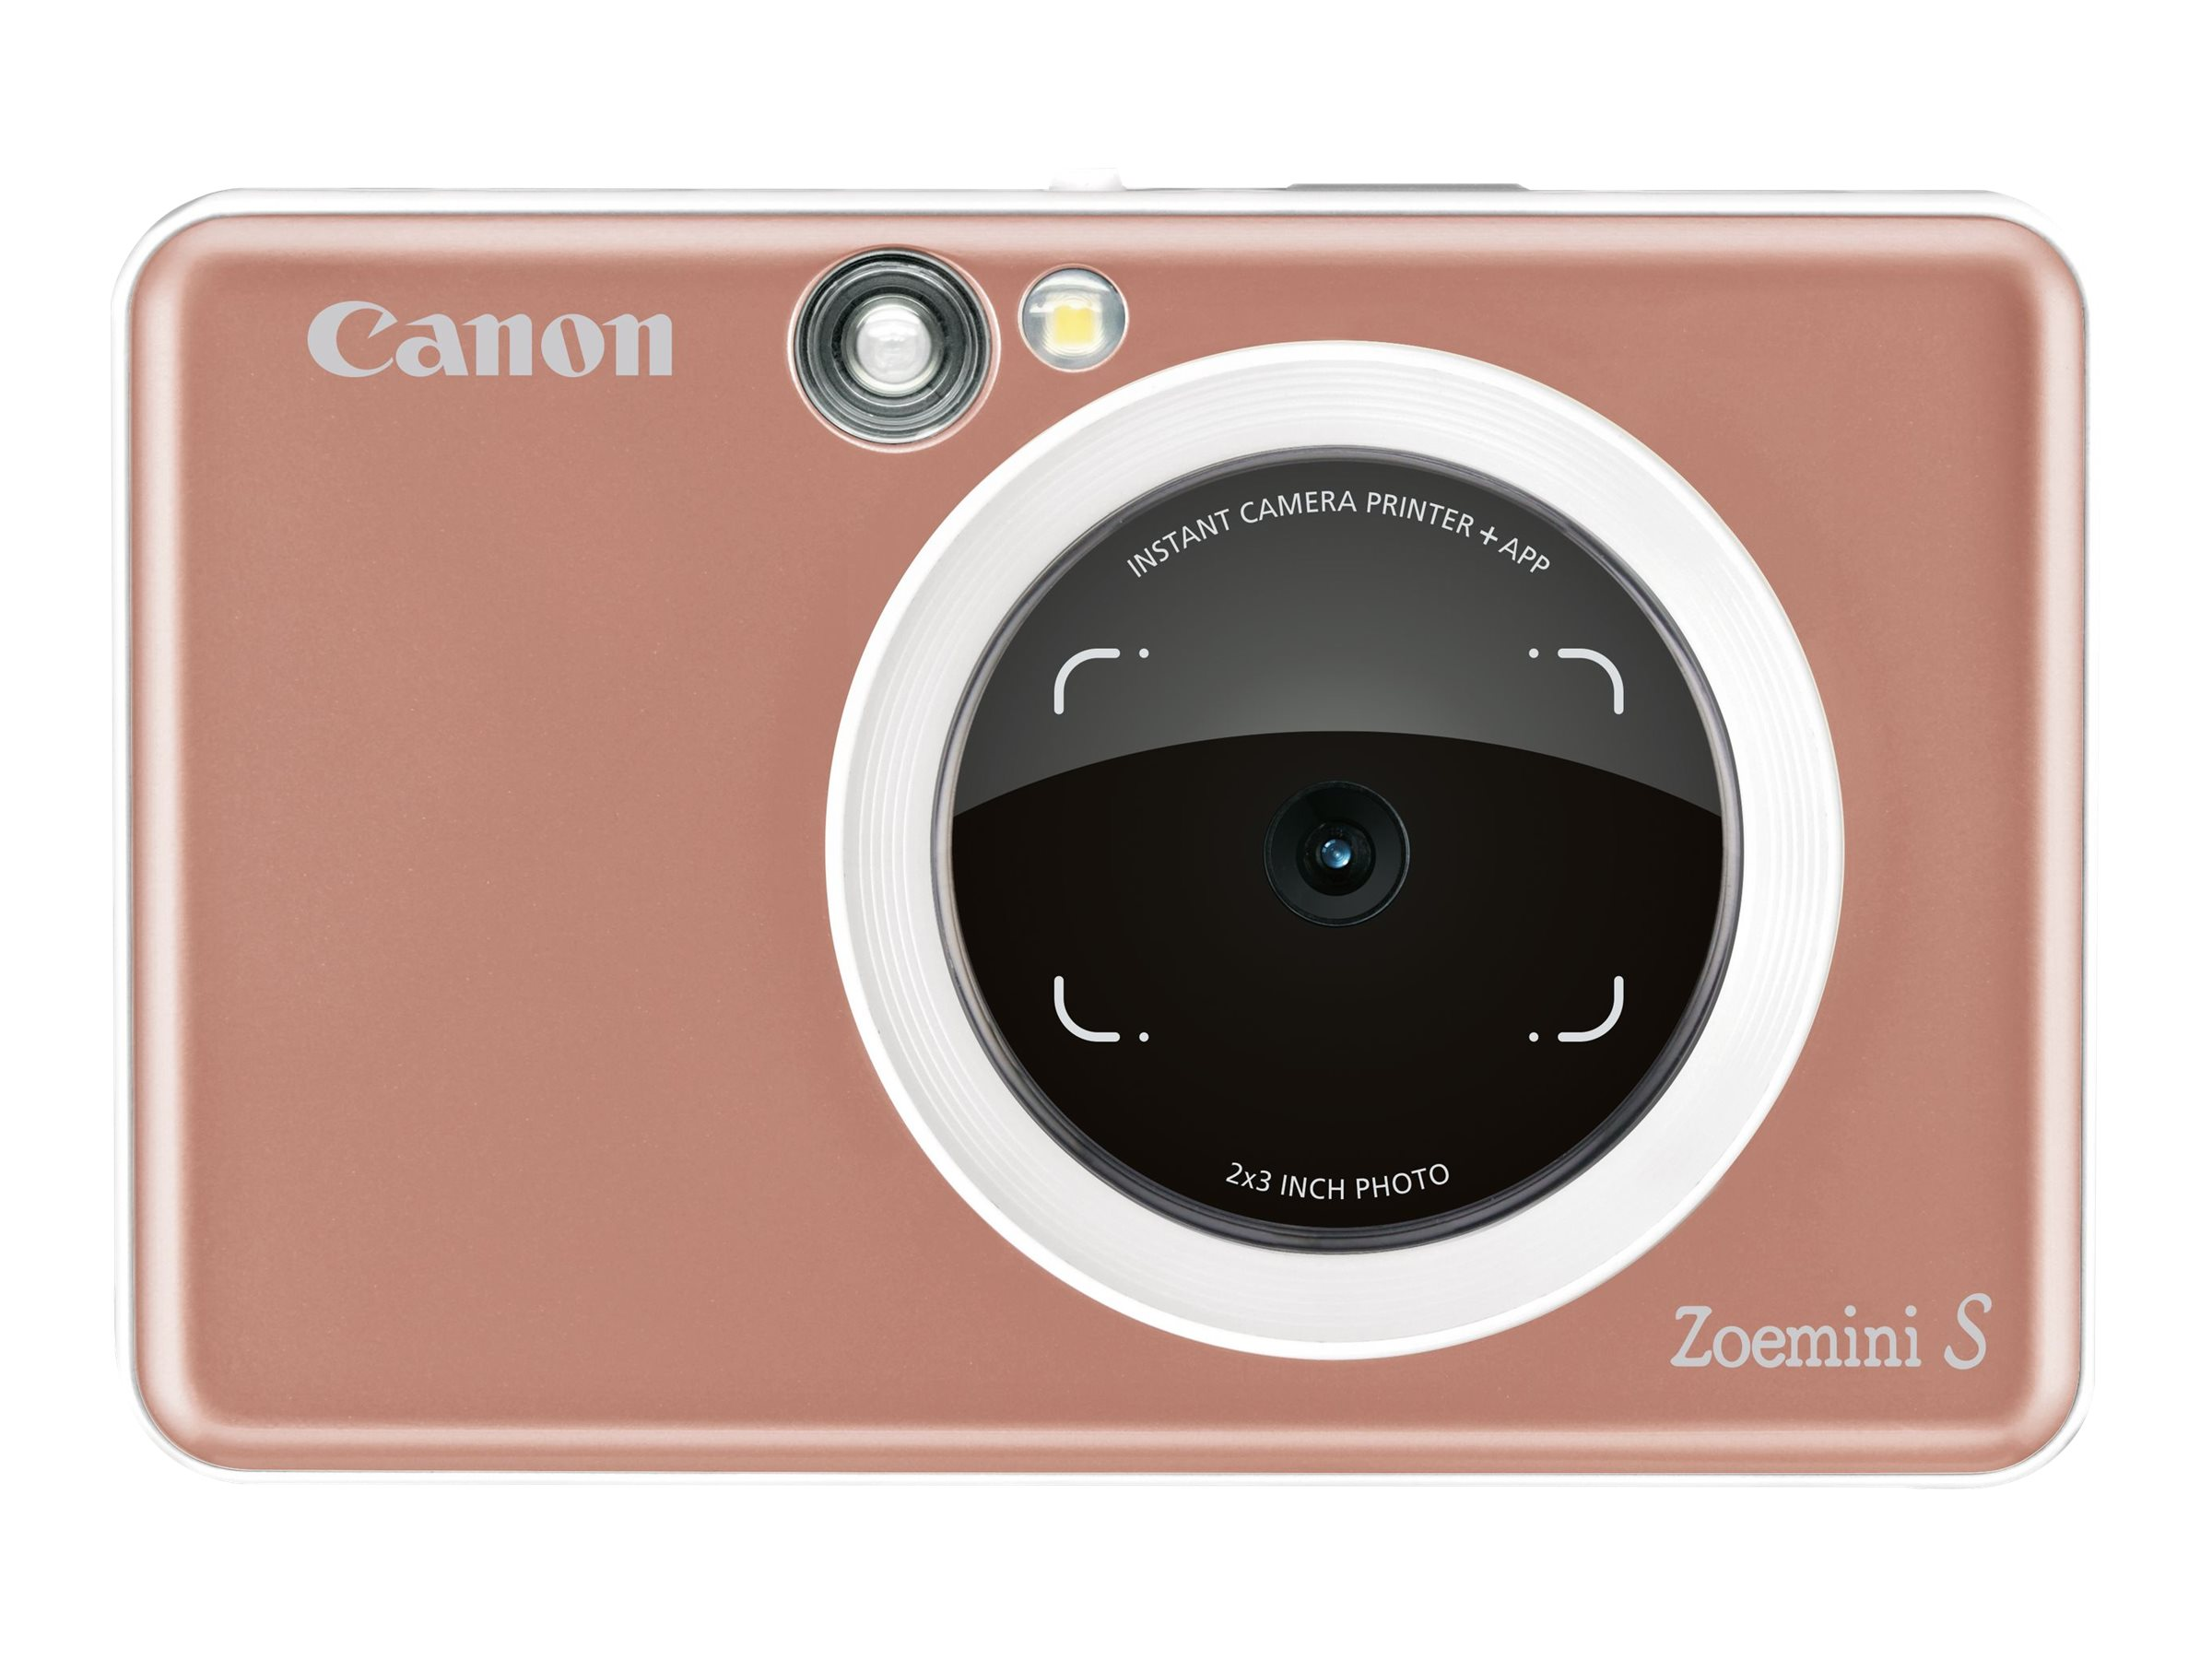 Canon Zoemini S - Digitalkamera - Kompaktkamera mit PhotoPrinter